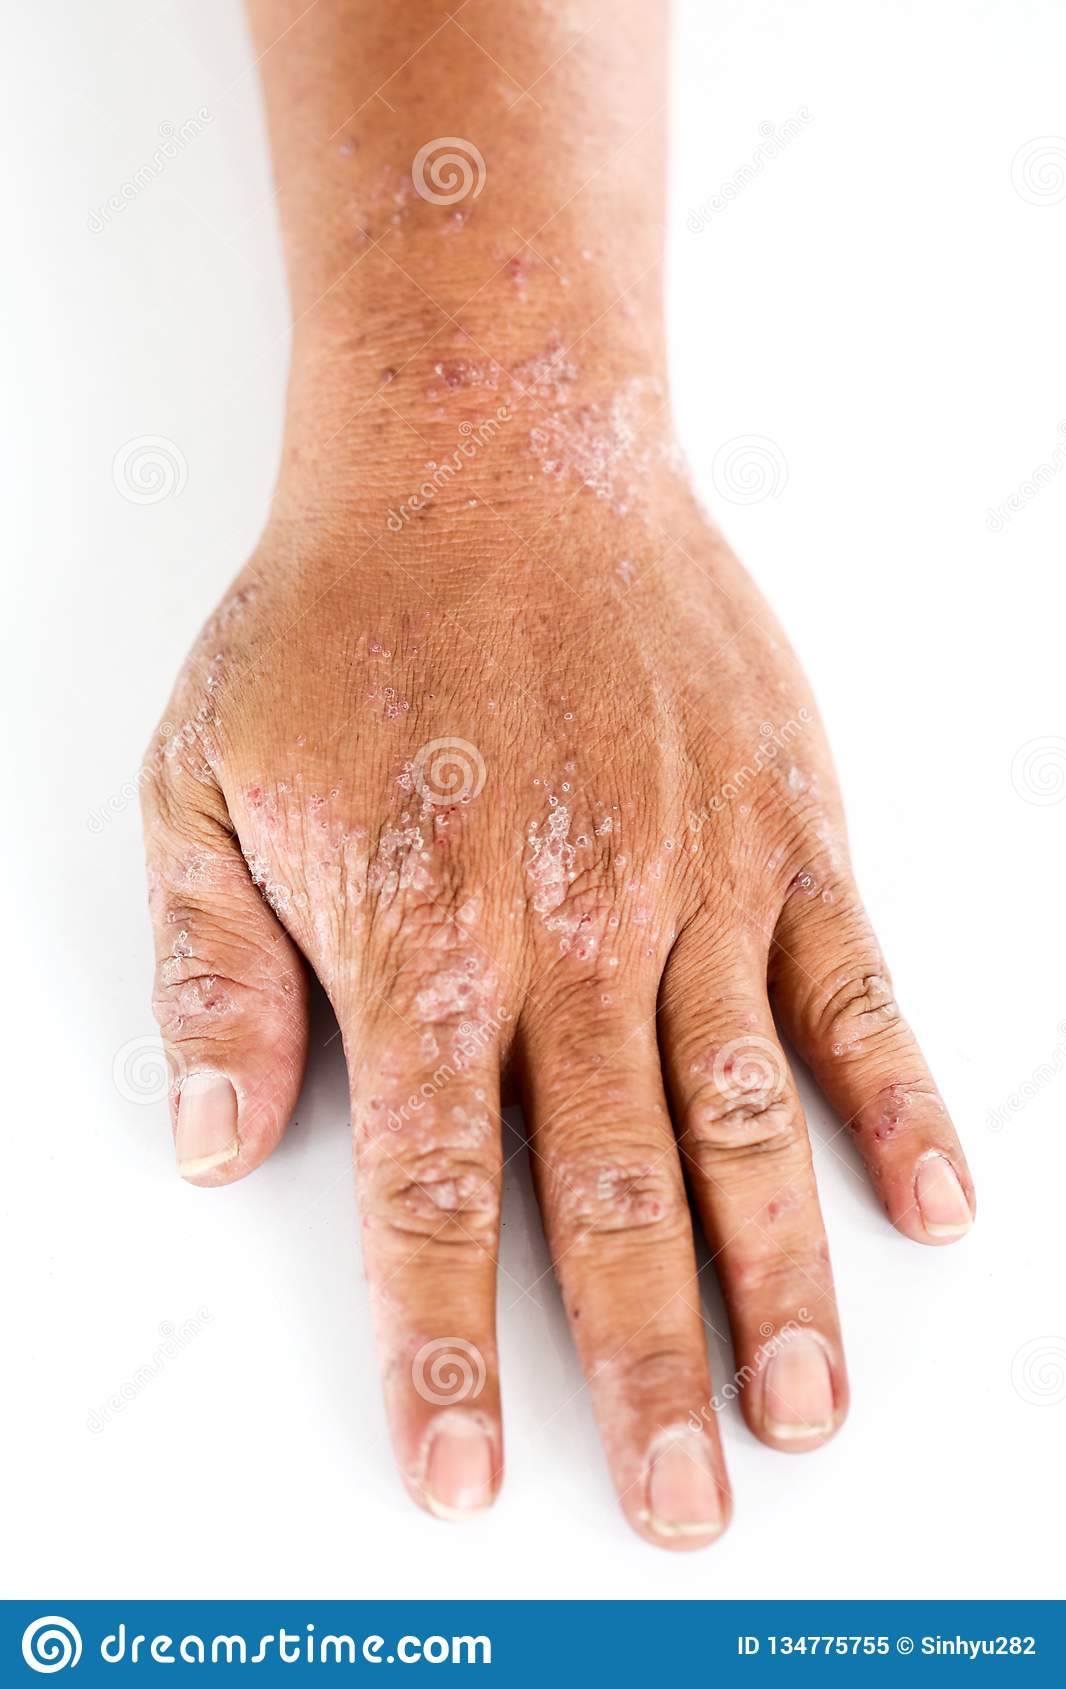 Atopic Dermatitis AD, Also Known As Atopic Eczema, Is A Type